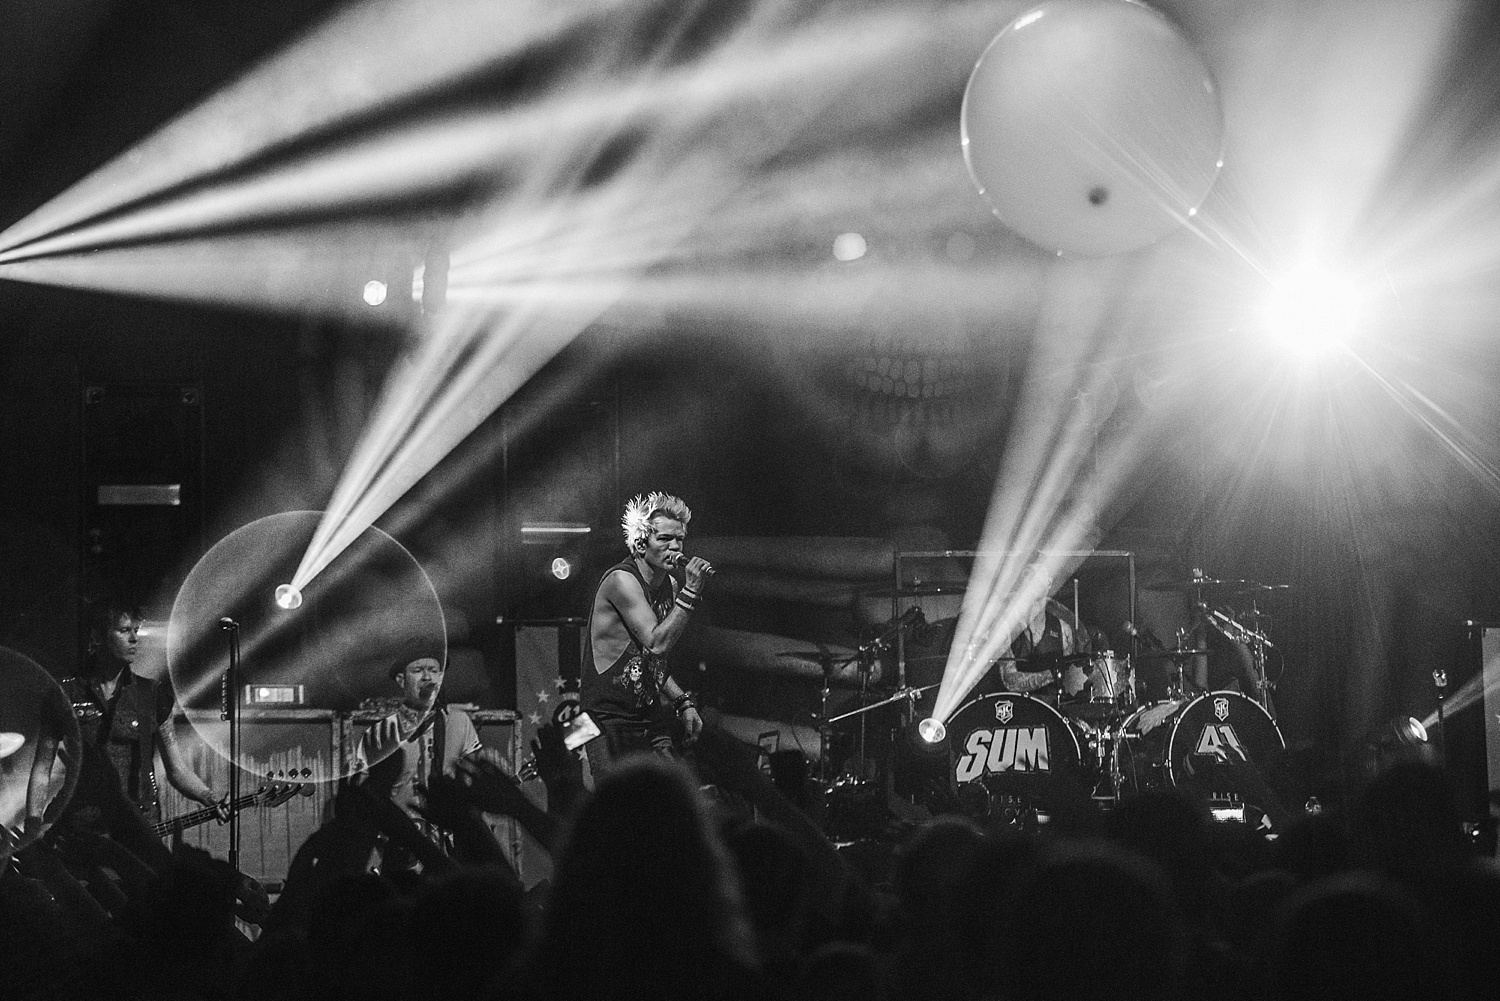 Sum 41 - May 2, 2017 - Freedom Hall